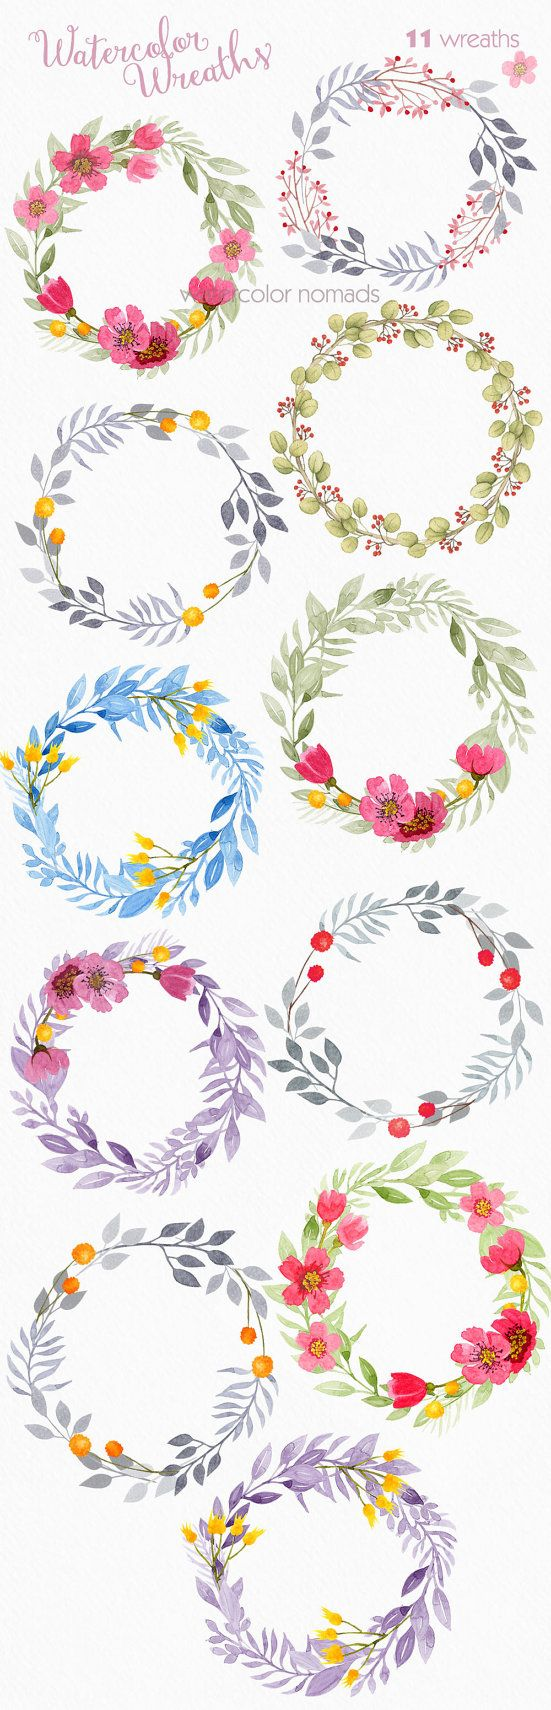 small resolution of floral wreath clipart watercolor clipart by watercolornomads